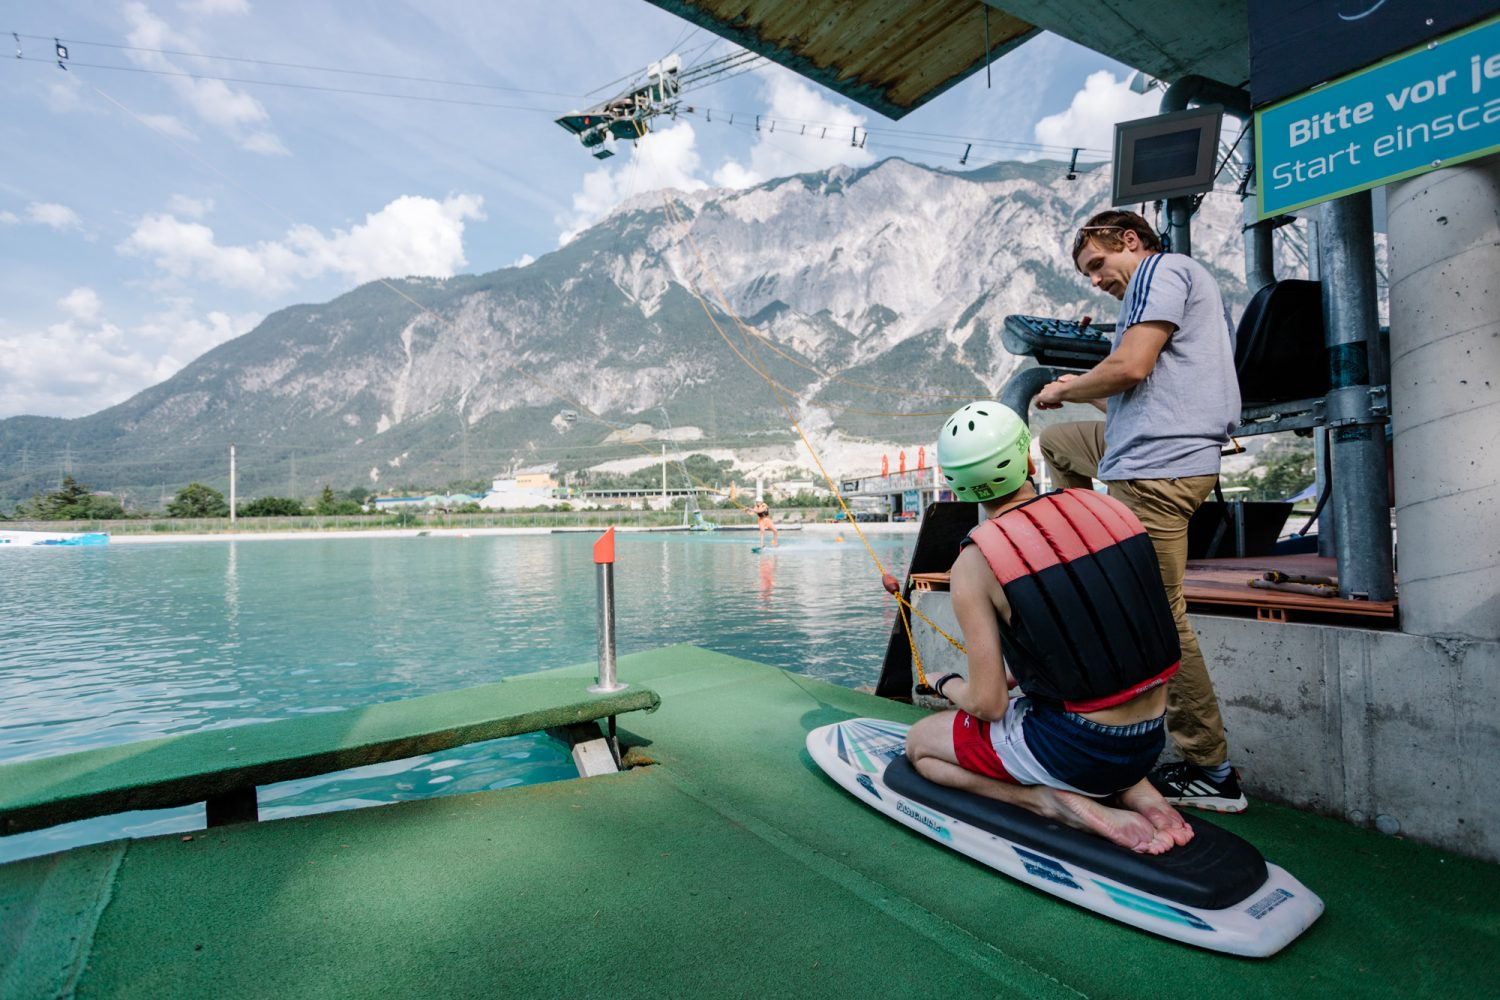 Wakeboarding for beginners in Tyrol, Austria